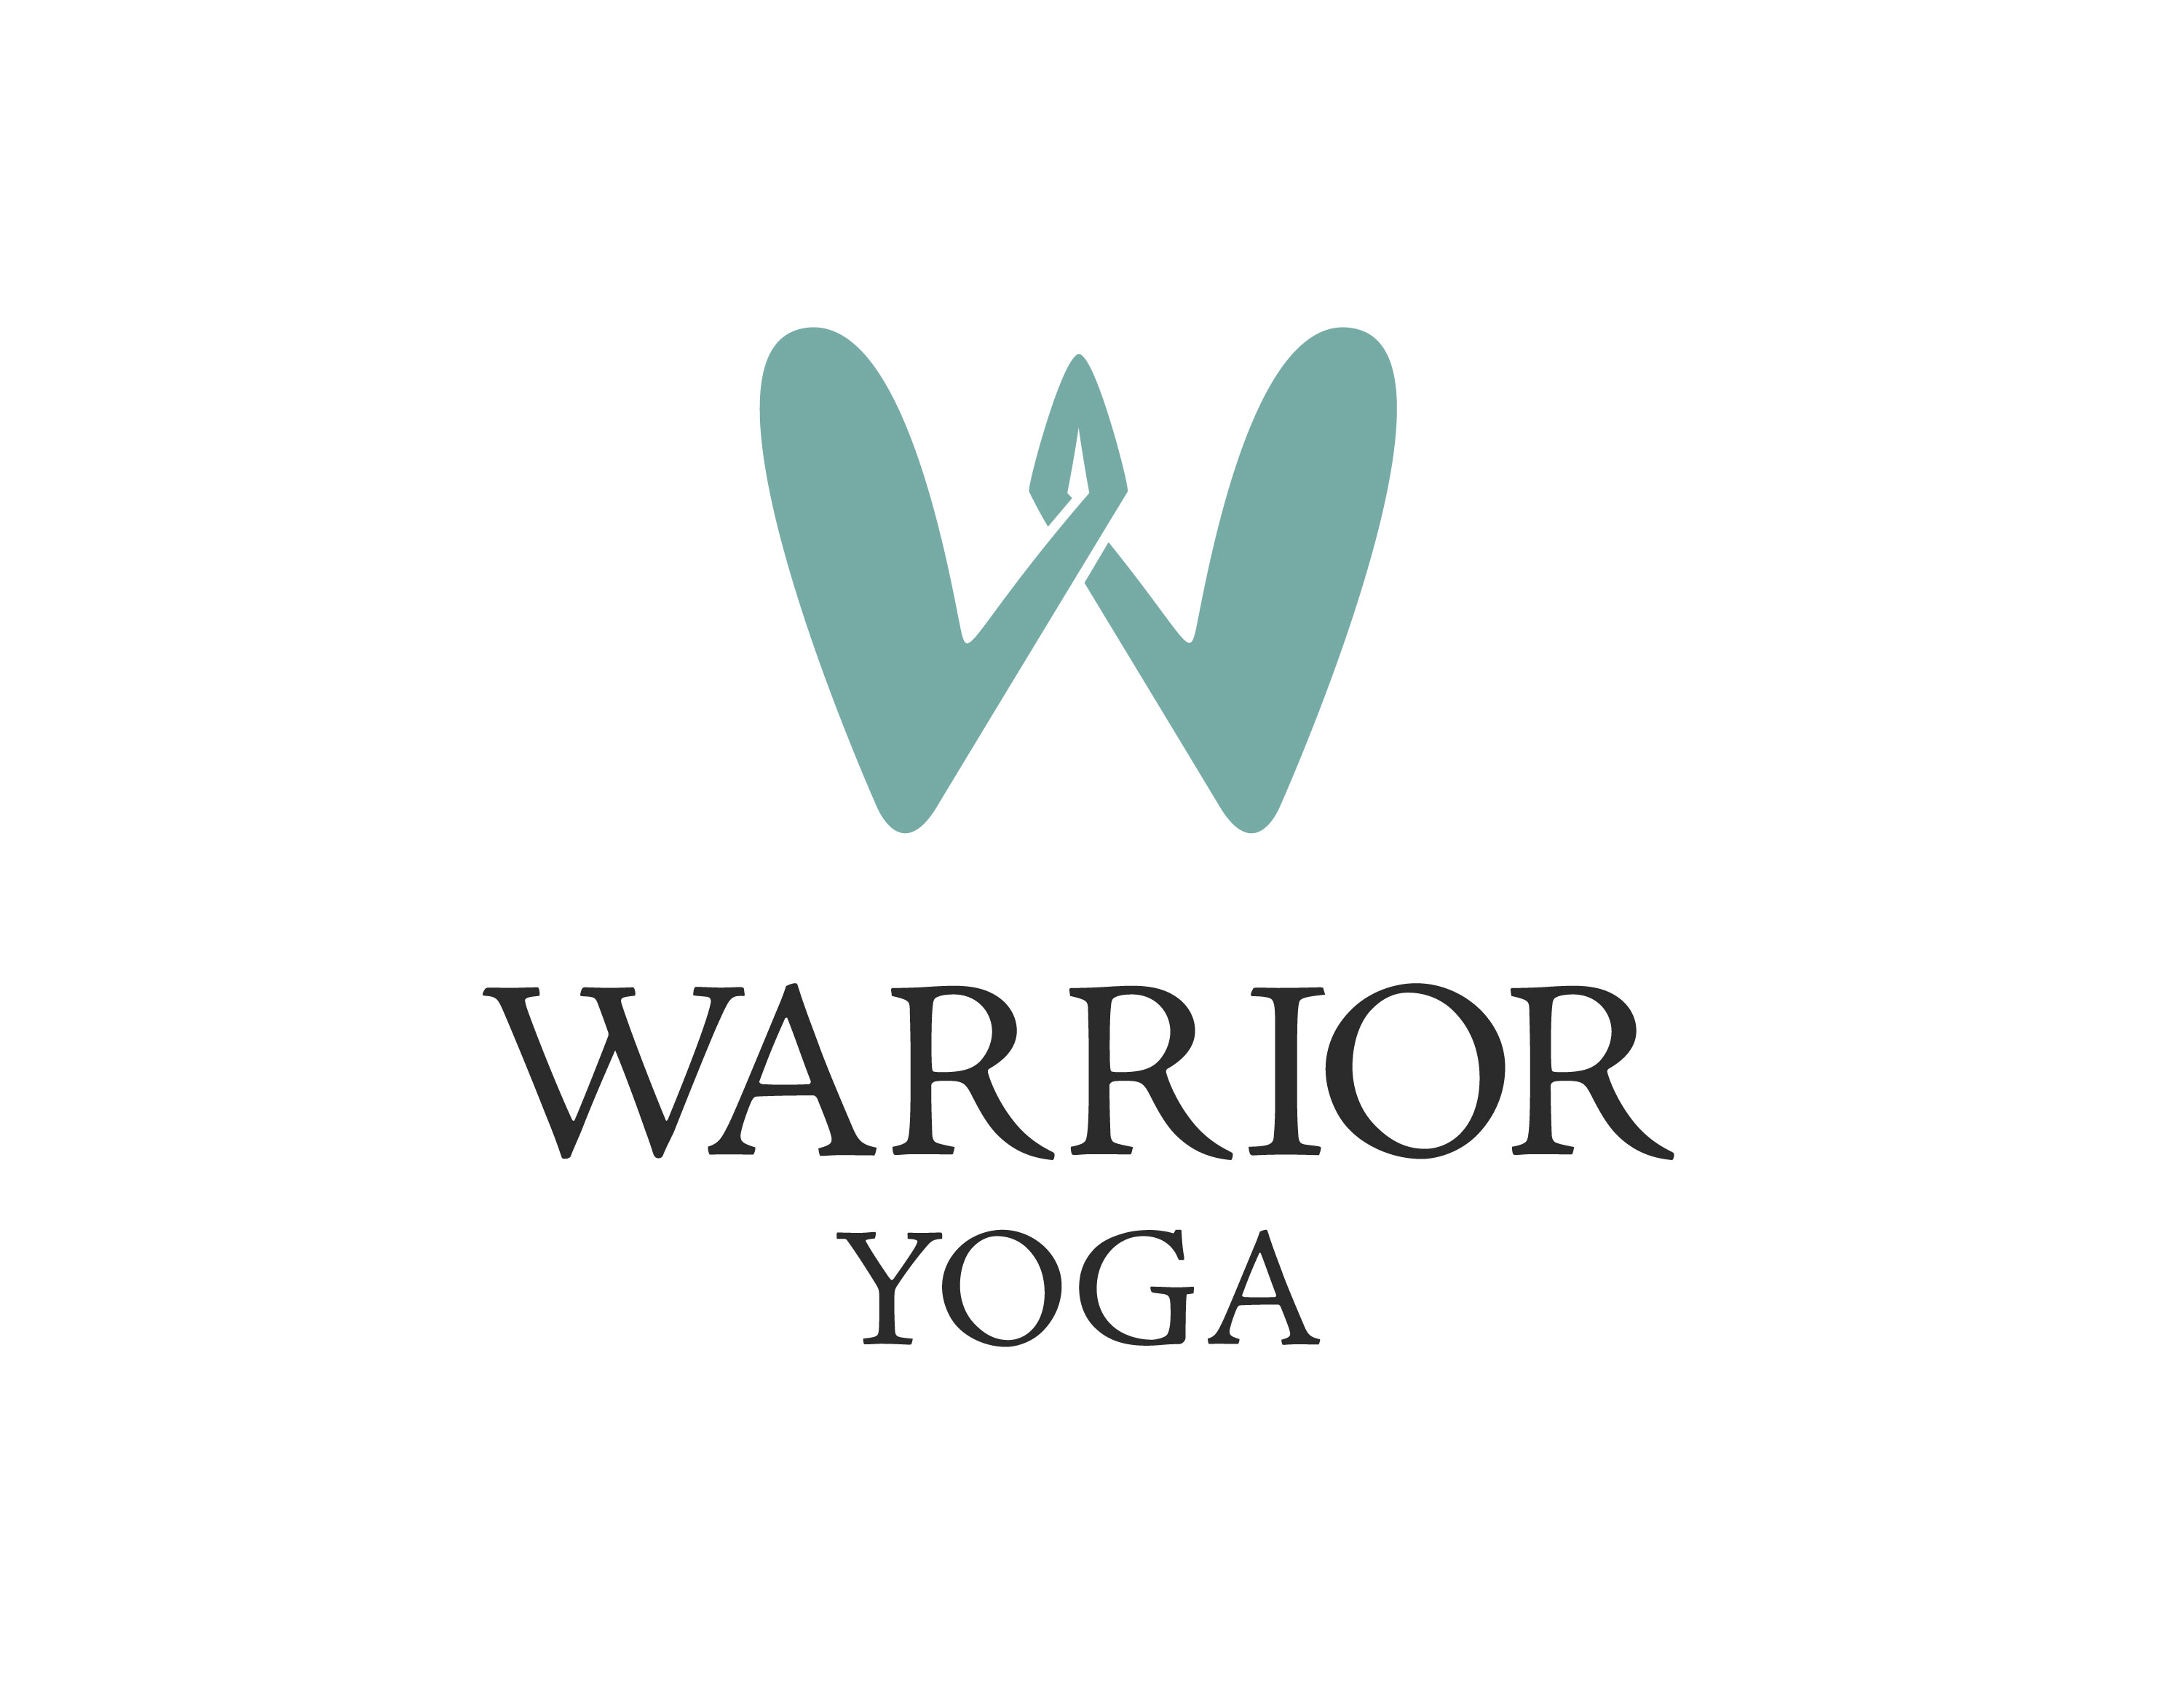 Warrior Yoga